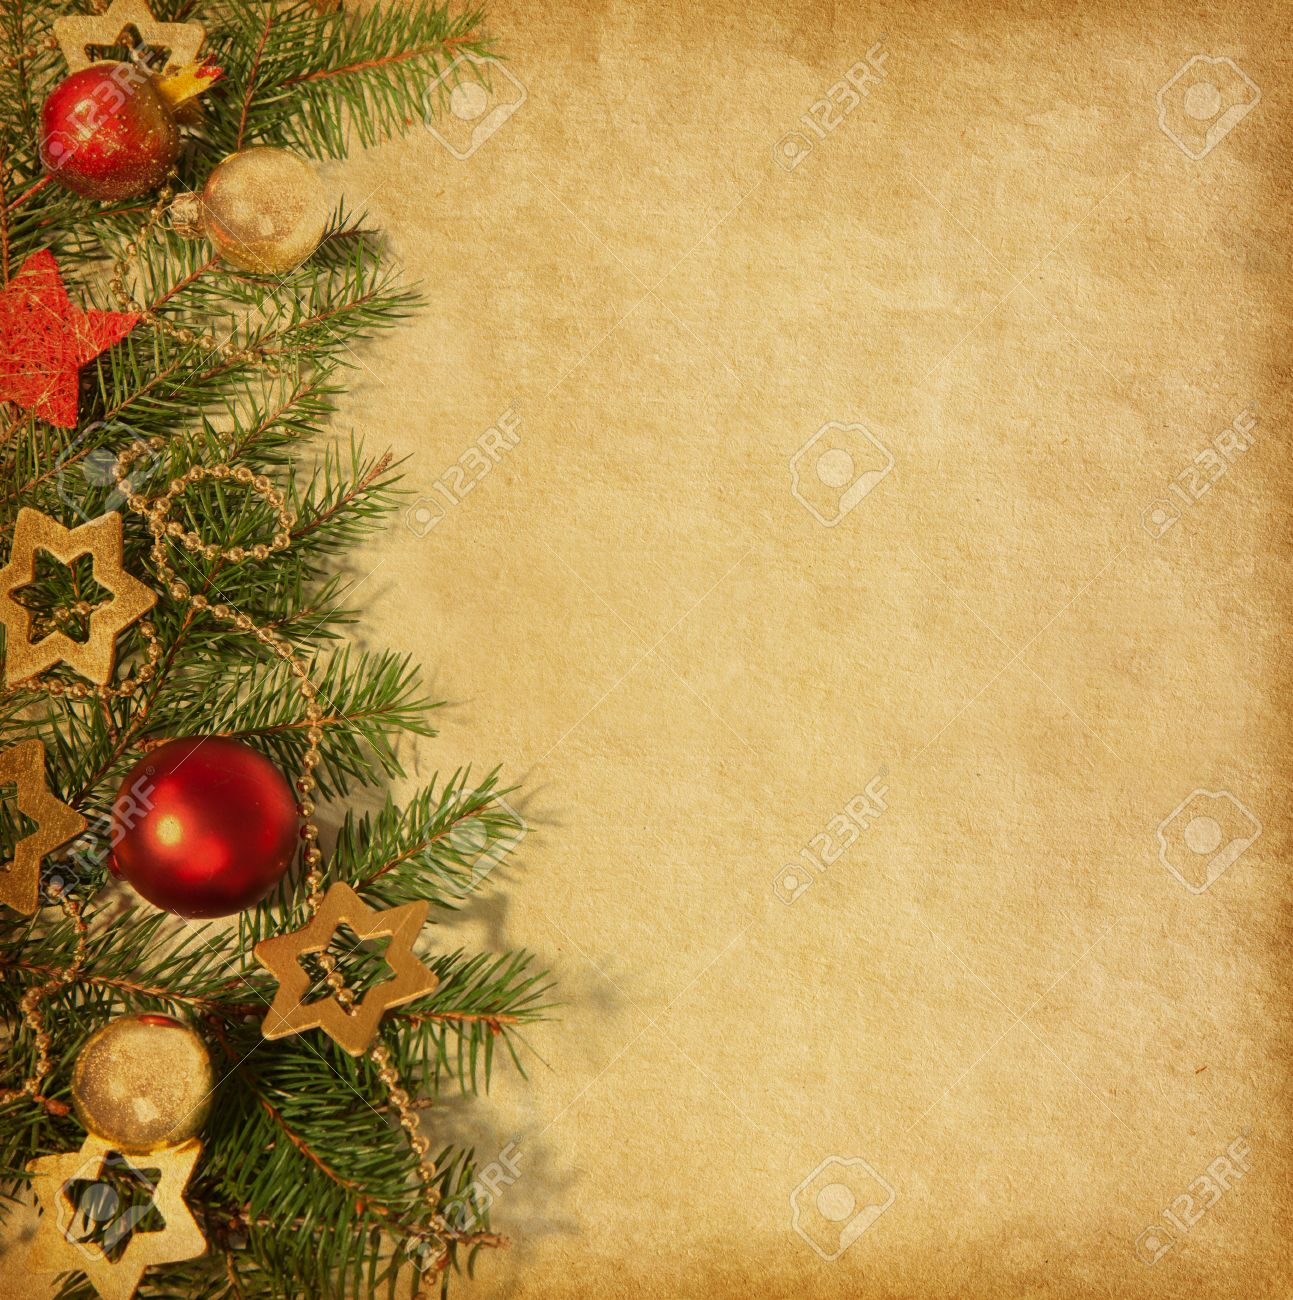 Christmas Ornaments Border: Beige Paper Background With Christmas Border